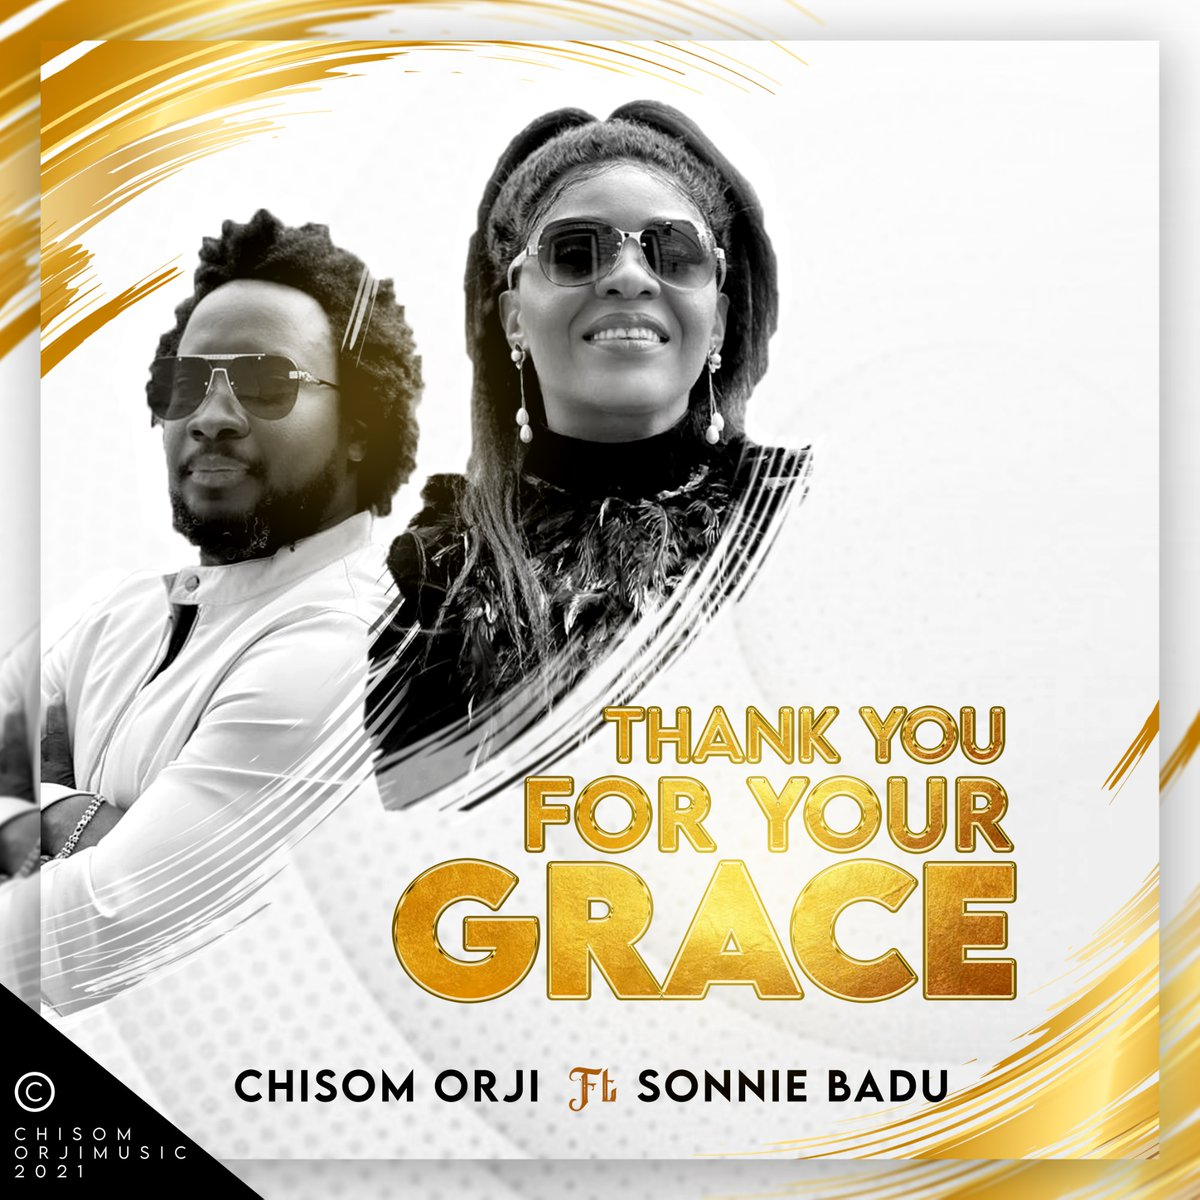 📻🎧🎵 - Thank you for your grace   @chisomorji  @SonnieBaduuk   Cc @onibokunadesope  @JESUS_FILMWORKS   #sundayvibes  #StaySafeNigeria